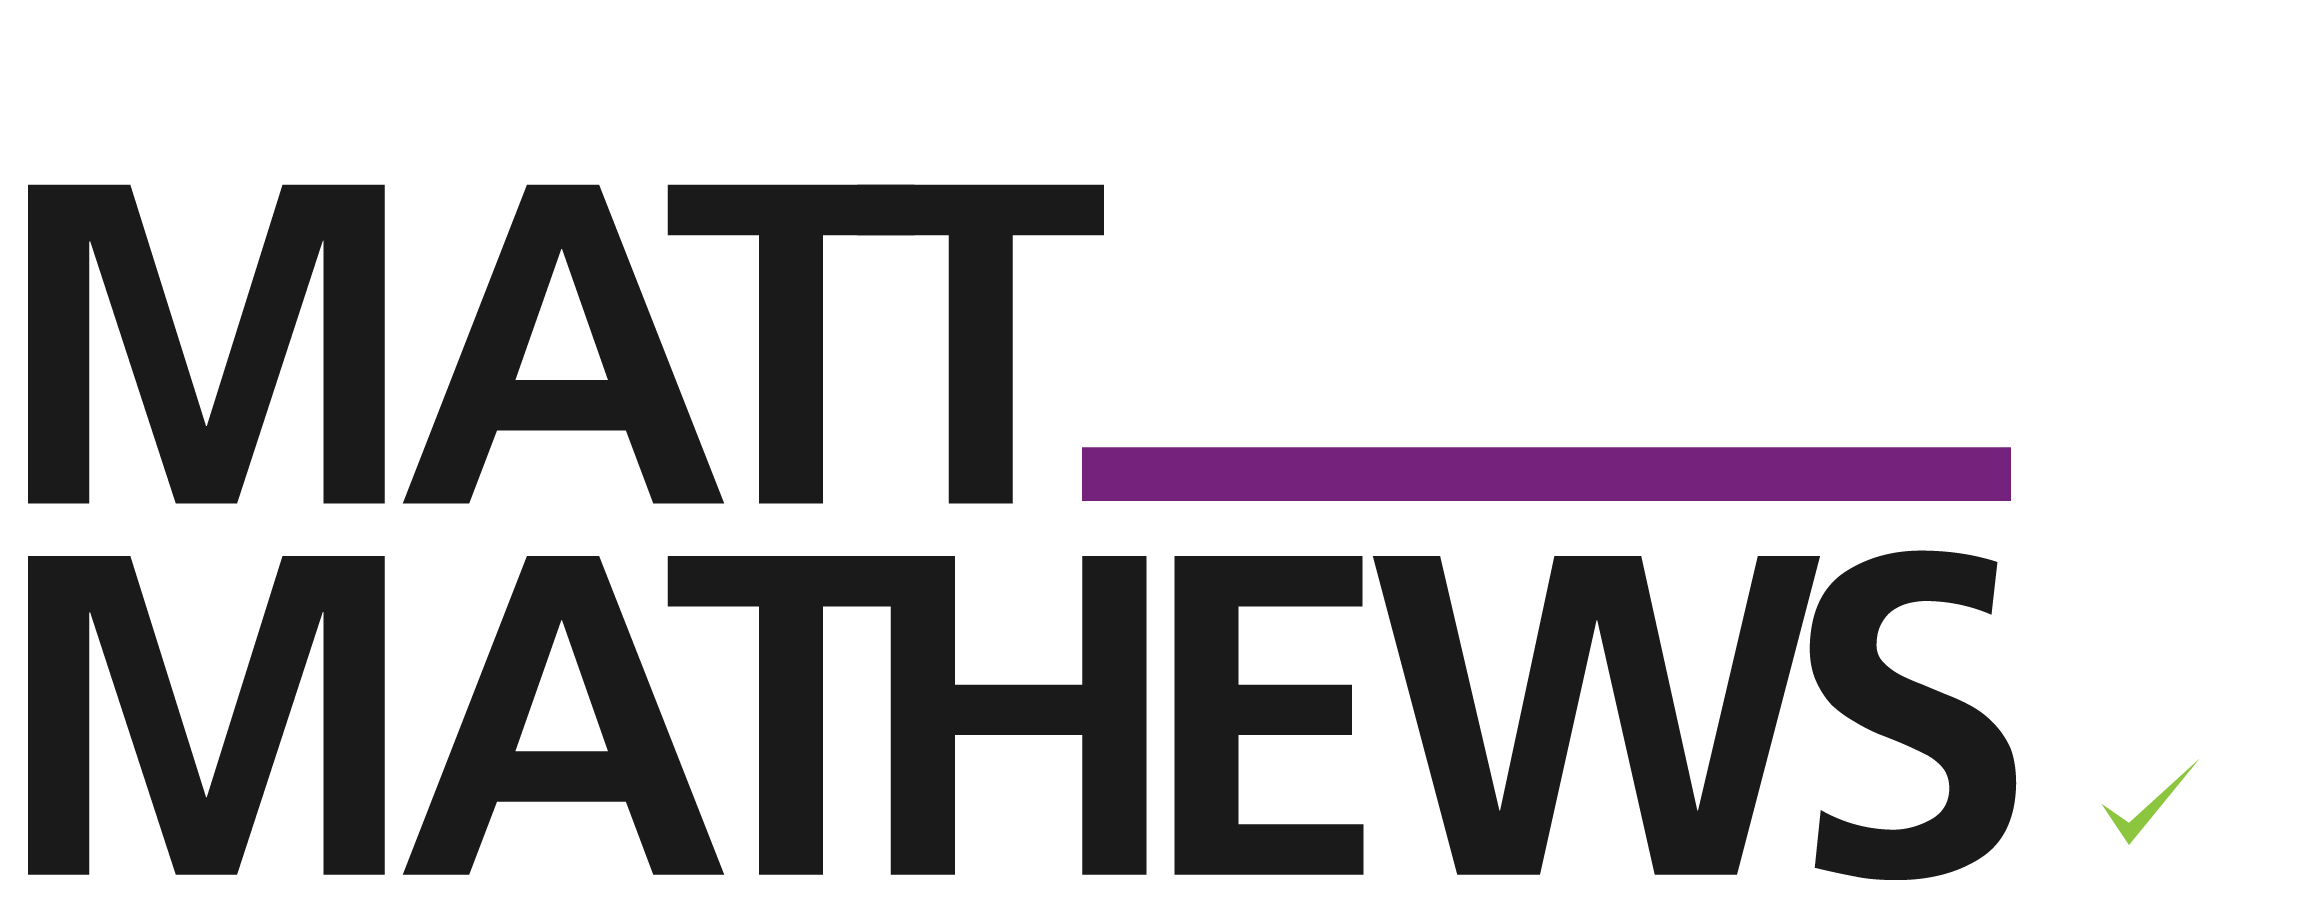 logo selectionné matt-mathews